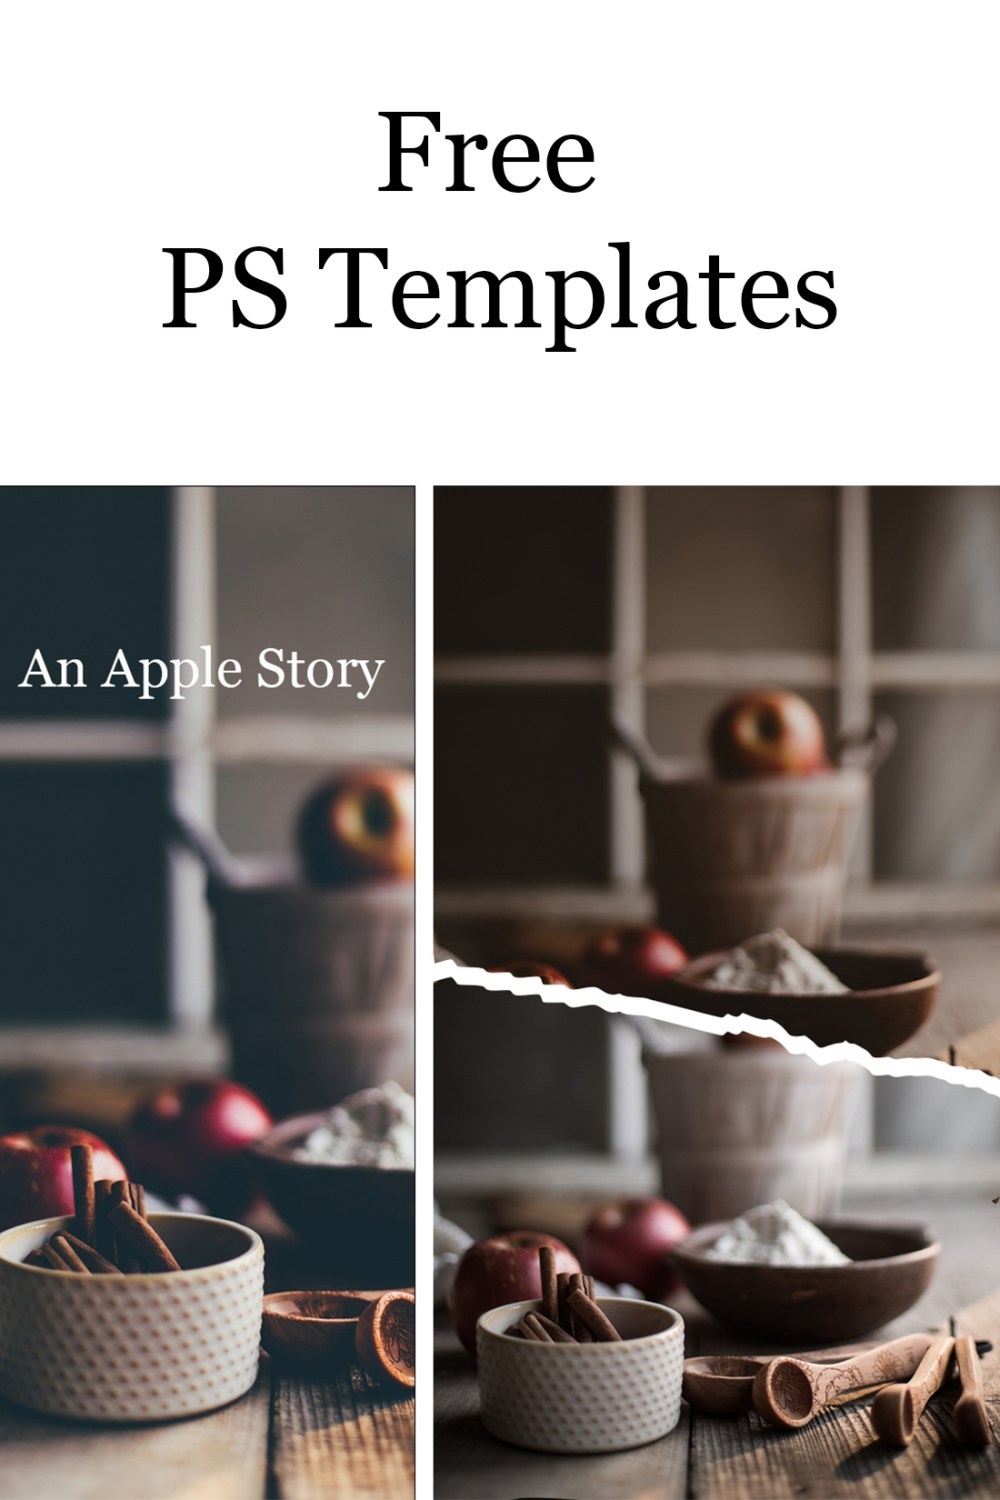 free ps templates, Sixteen Miles Out,